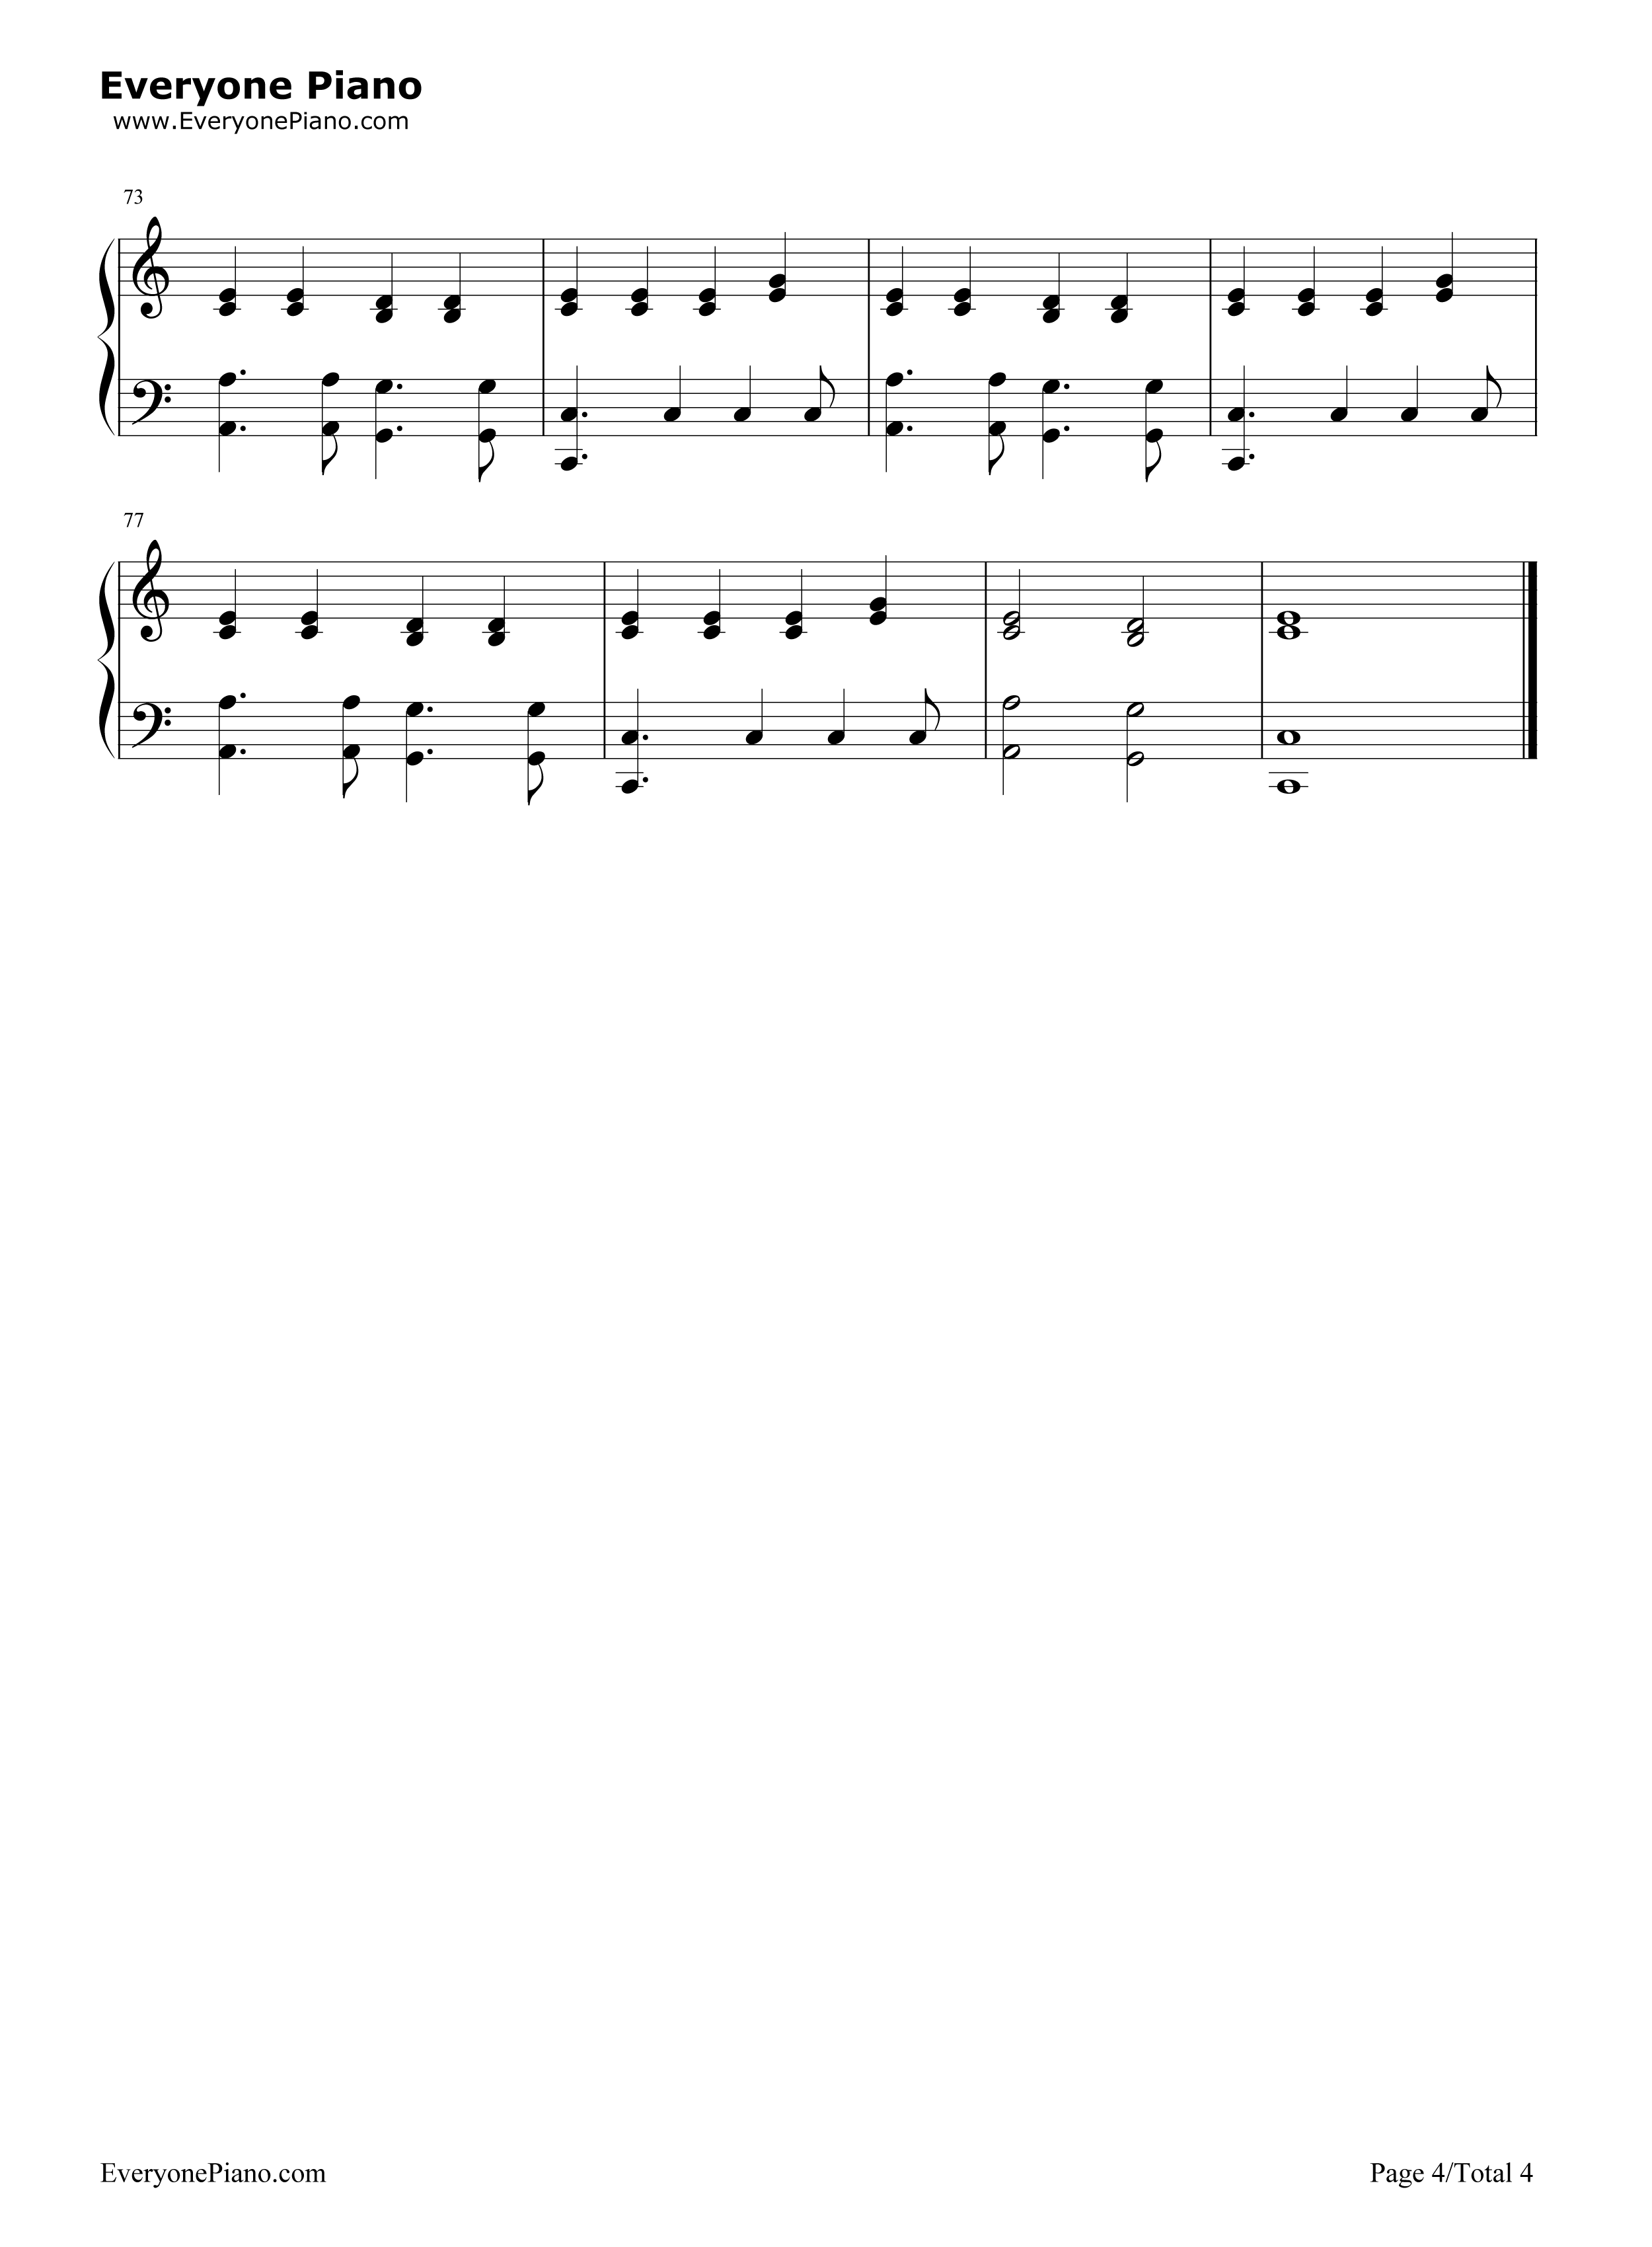 Riptide-Taylor Swift Stave Preview 4-Free Piano Sheet Music u0026 Piano Chords